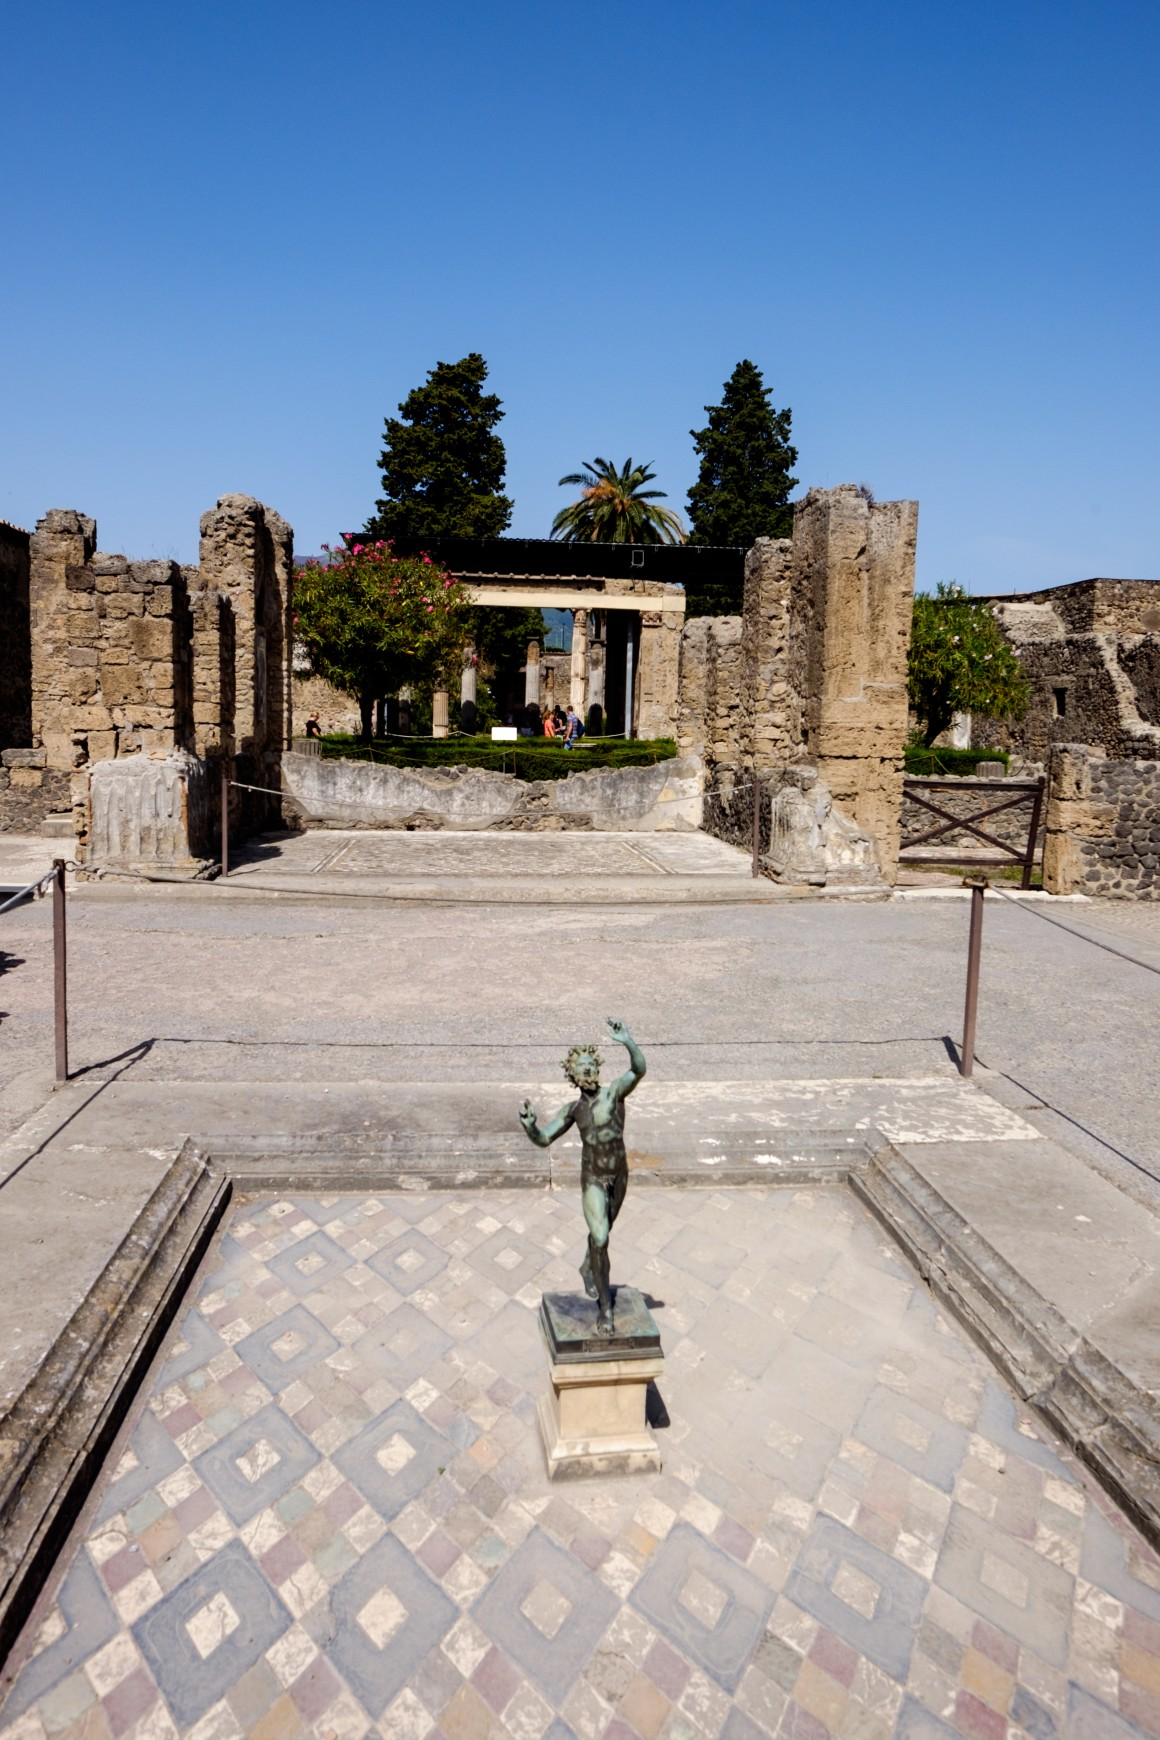 Courtyard of House of the Faun